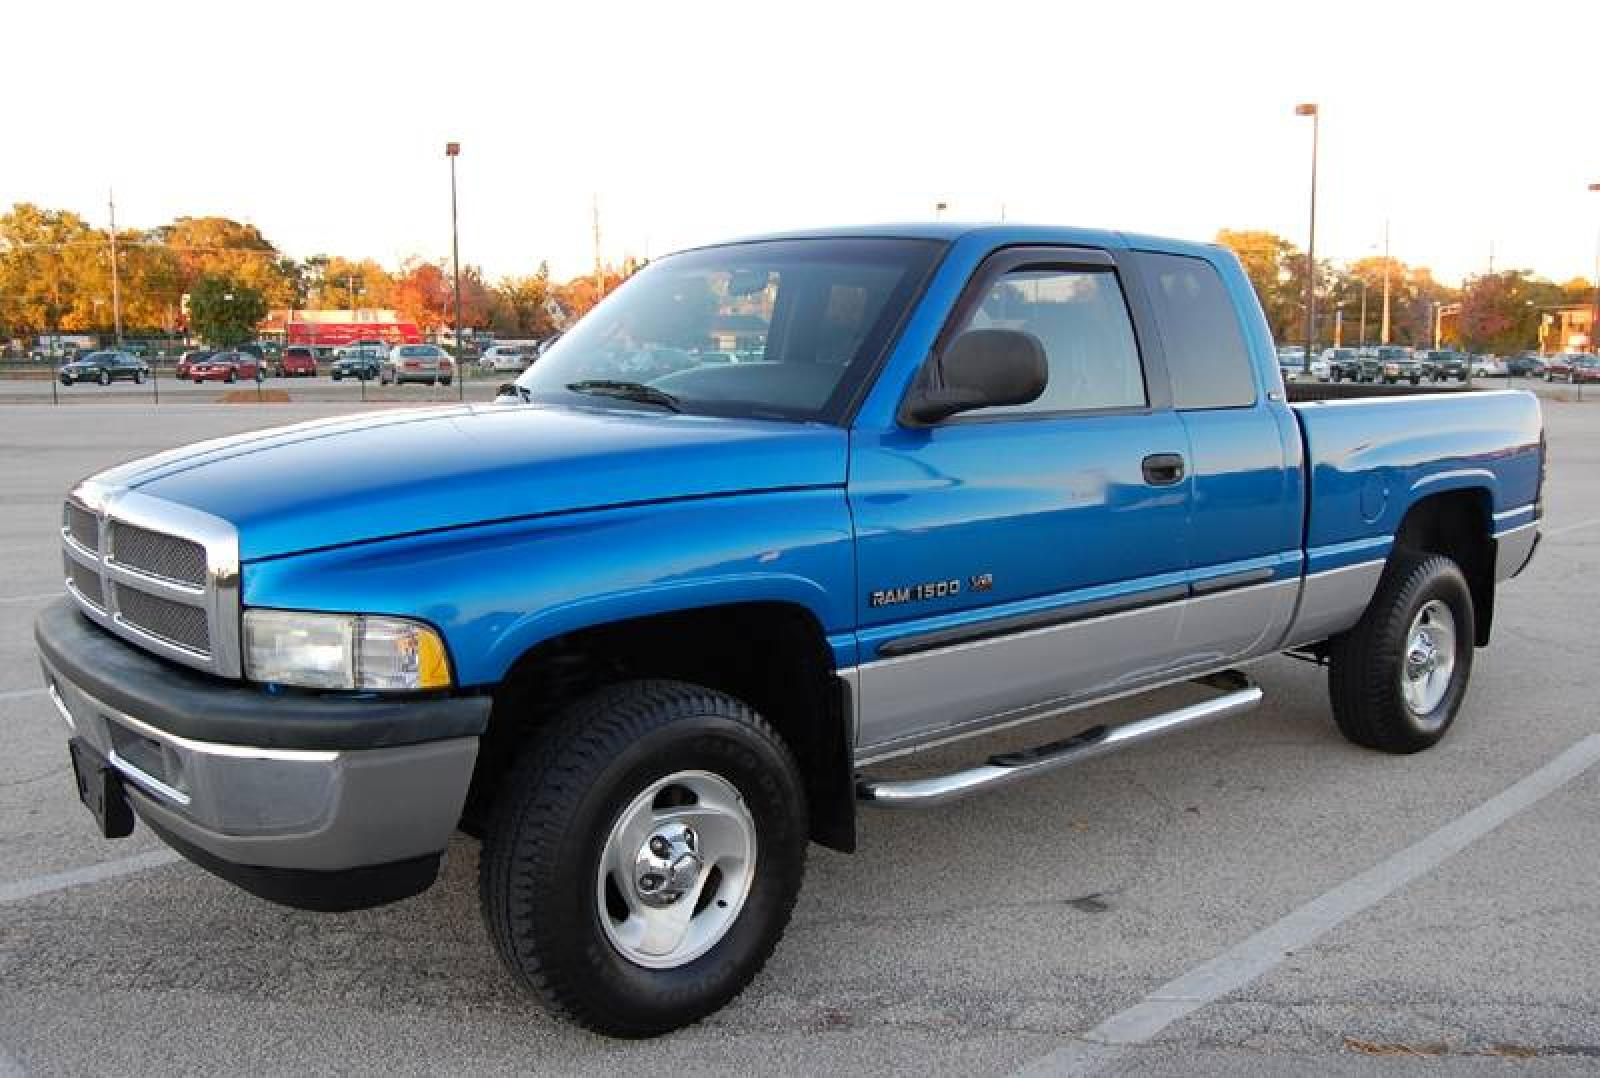 2001 dodge ram pickup 1500 information and photos zombiedrive. Black Bedroom Furniture Sets. Home Design Ideas